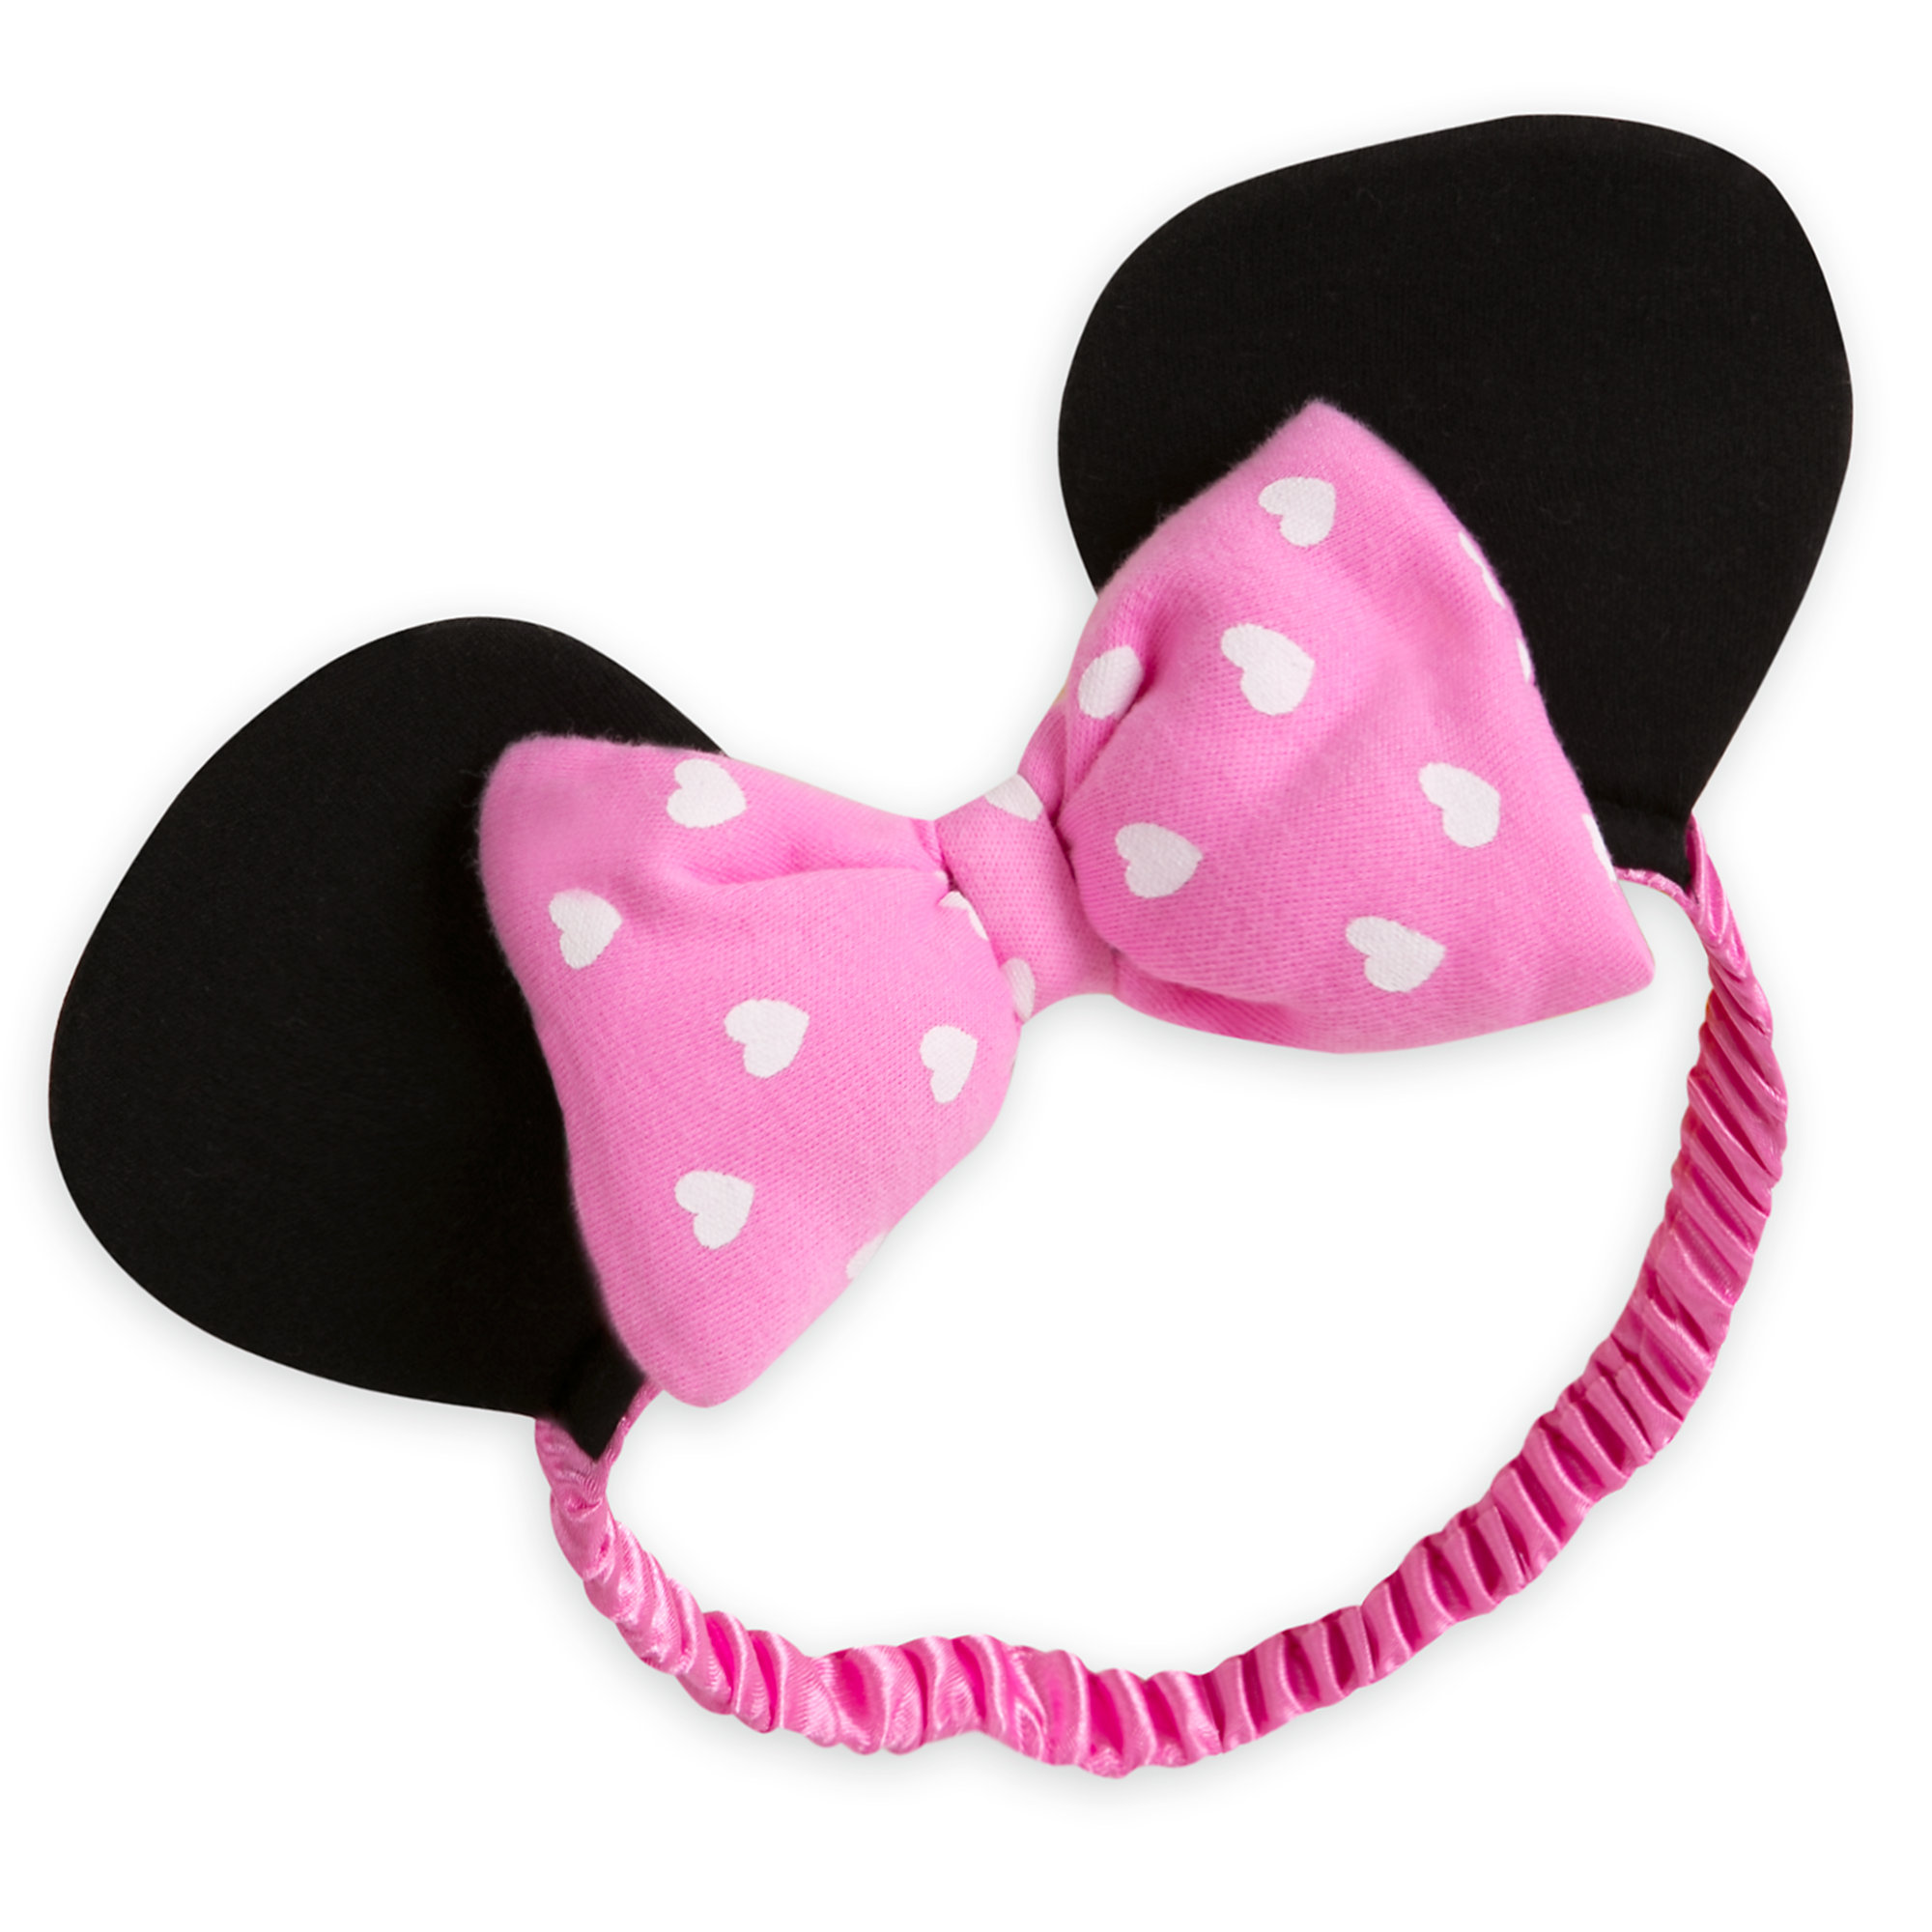 2000x2000 Minnie Mouse Pink Costume Bodysuit For Baby